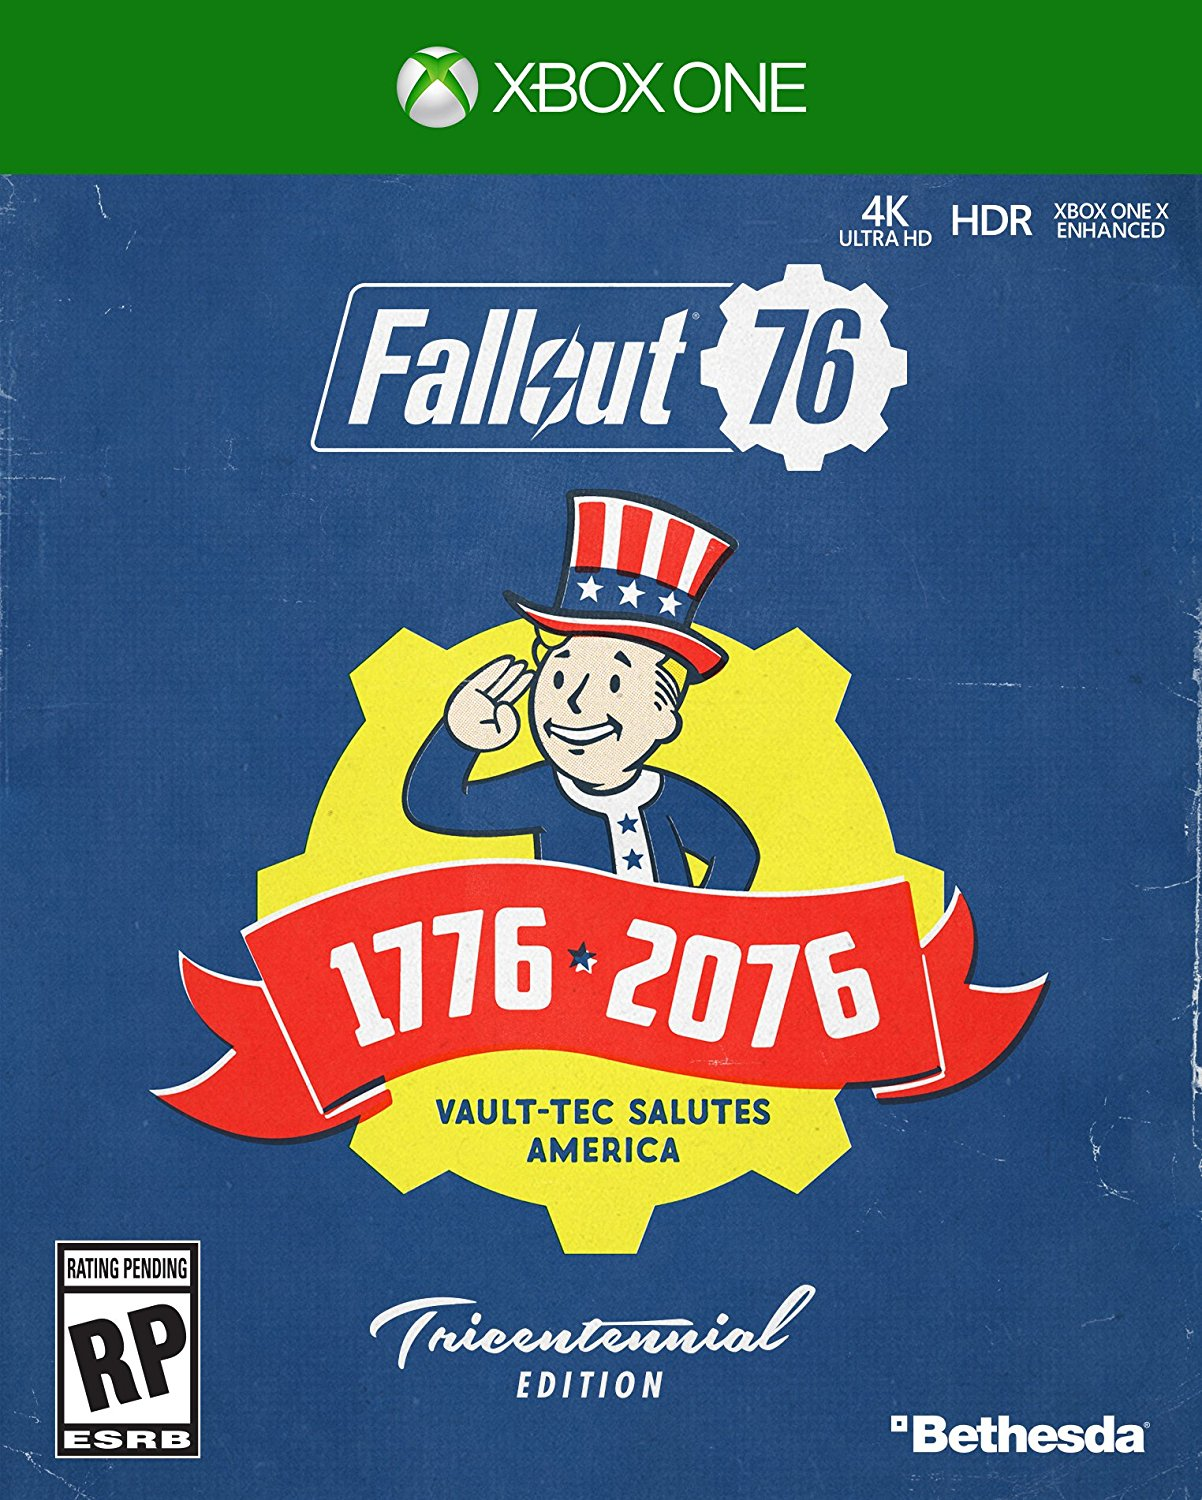 Fallout 76 Release Date and Details Confirmed!